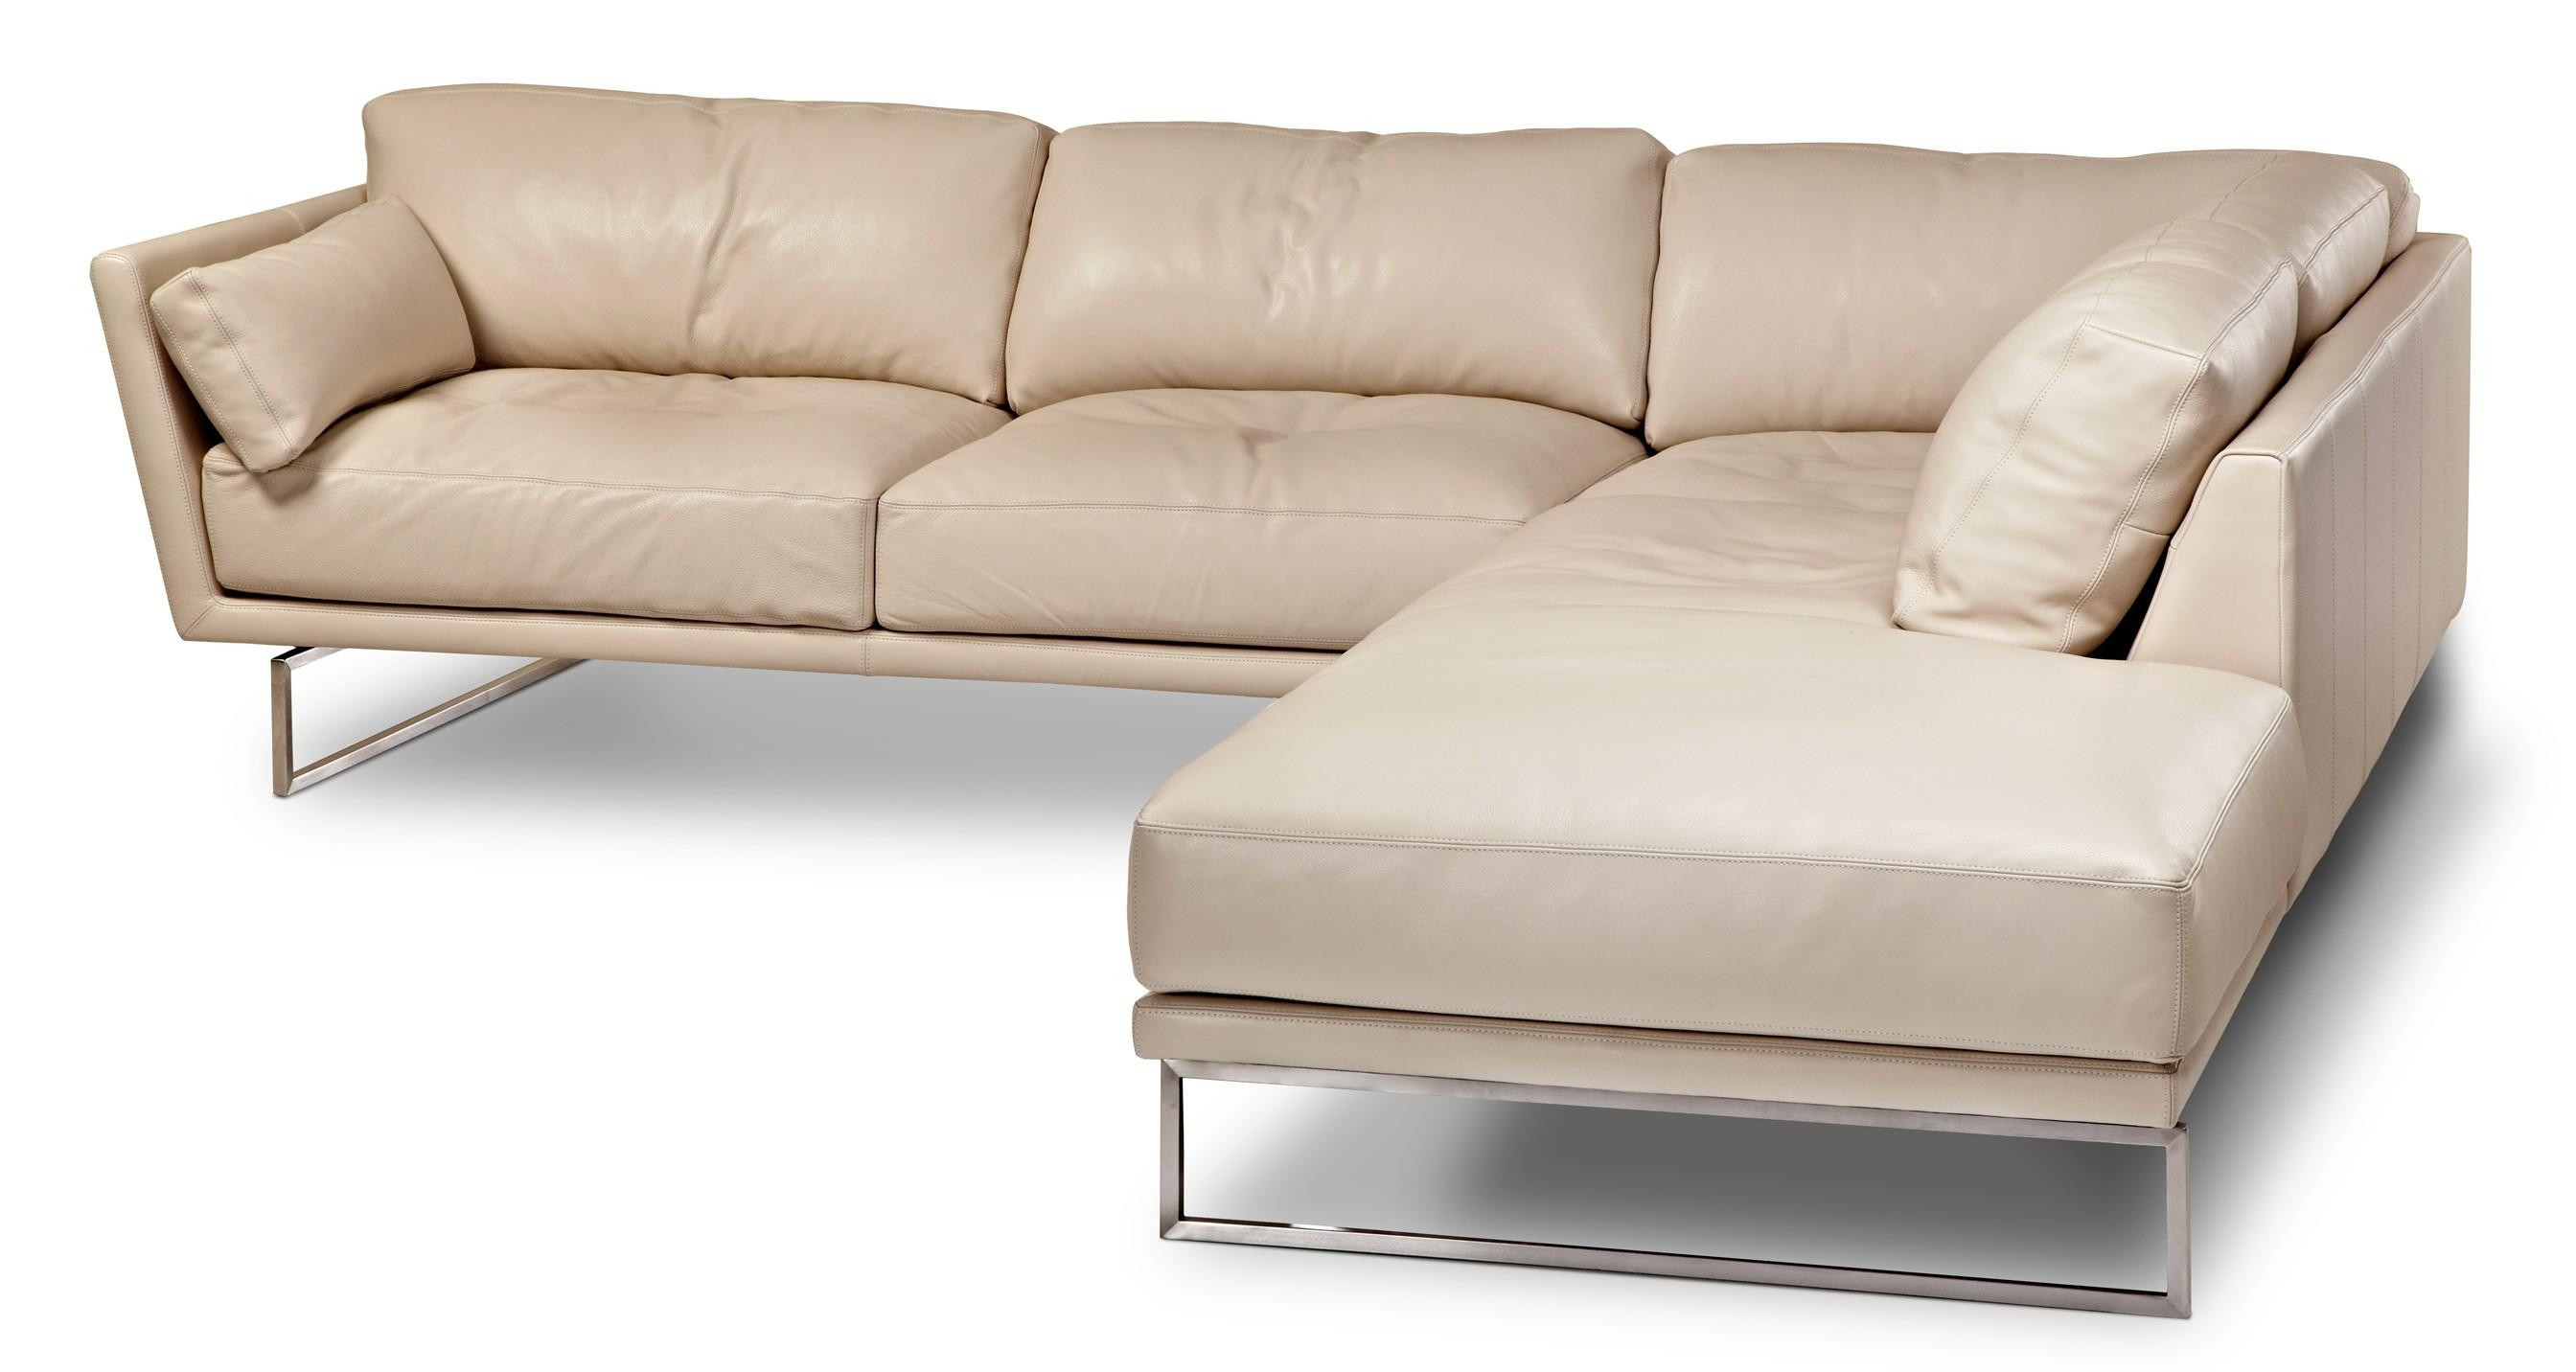 Best ideas about Discount Sleep Sofa . Save or Pin 20 Inspirations Sleek Sectional Sofa Now.